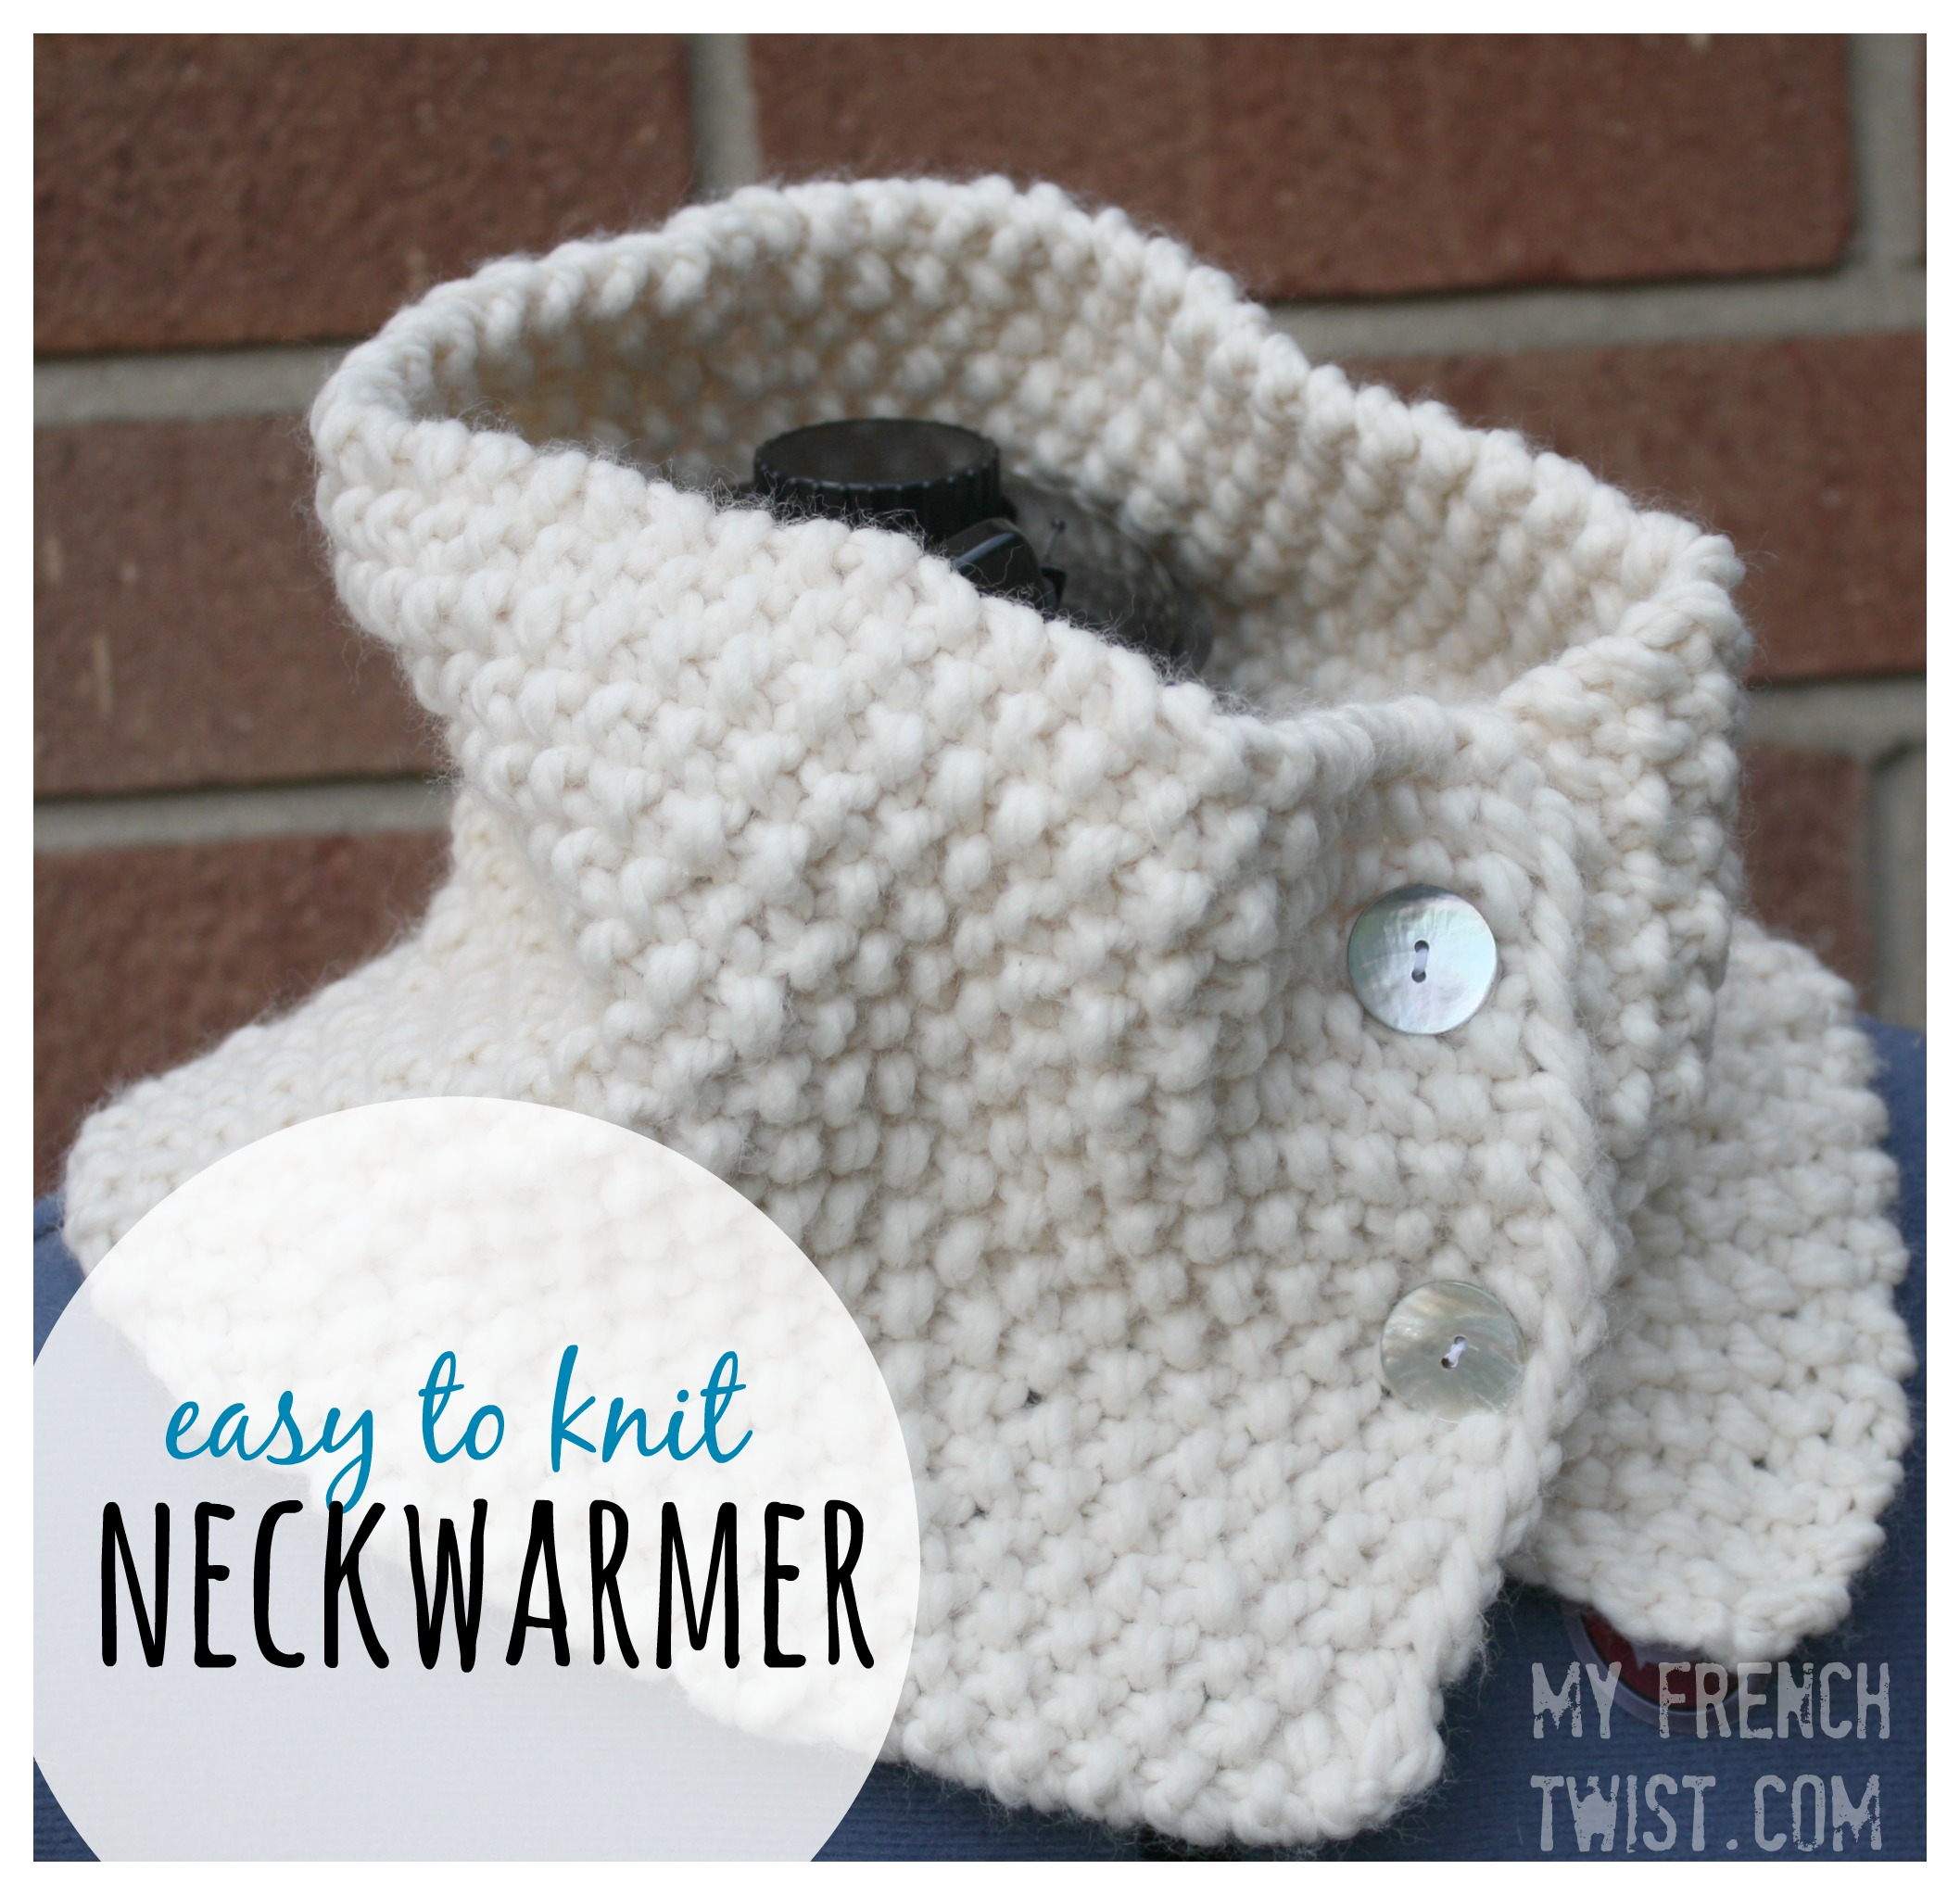 easy to knit neckwarmer with myfrenchtwist.com